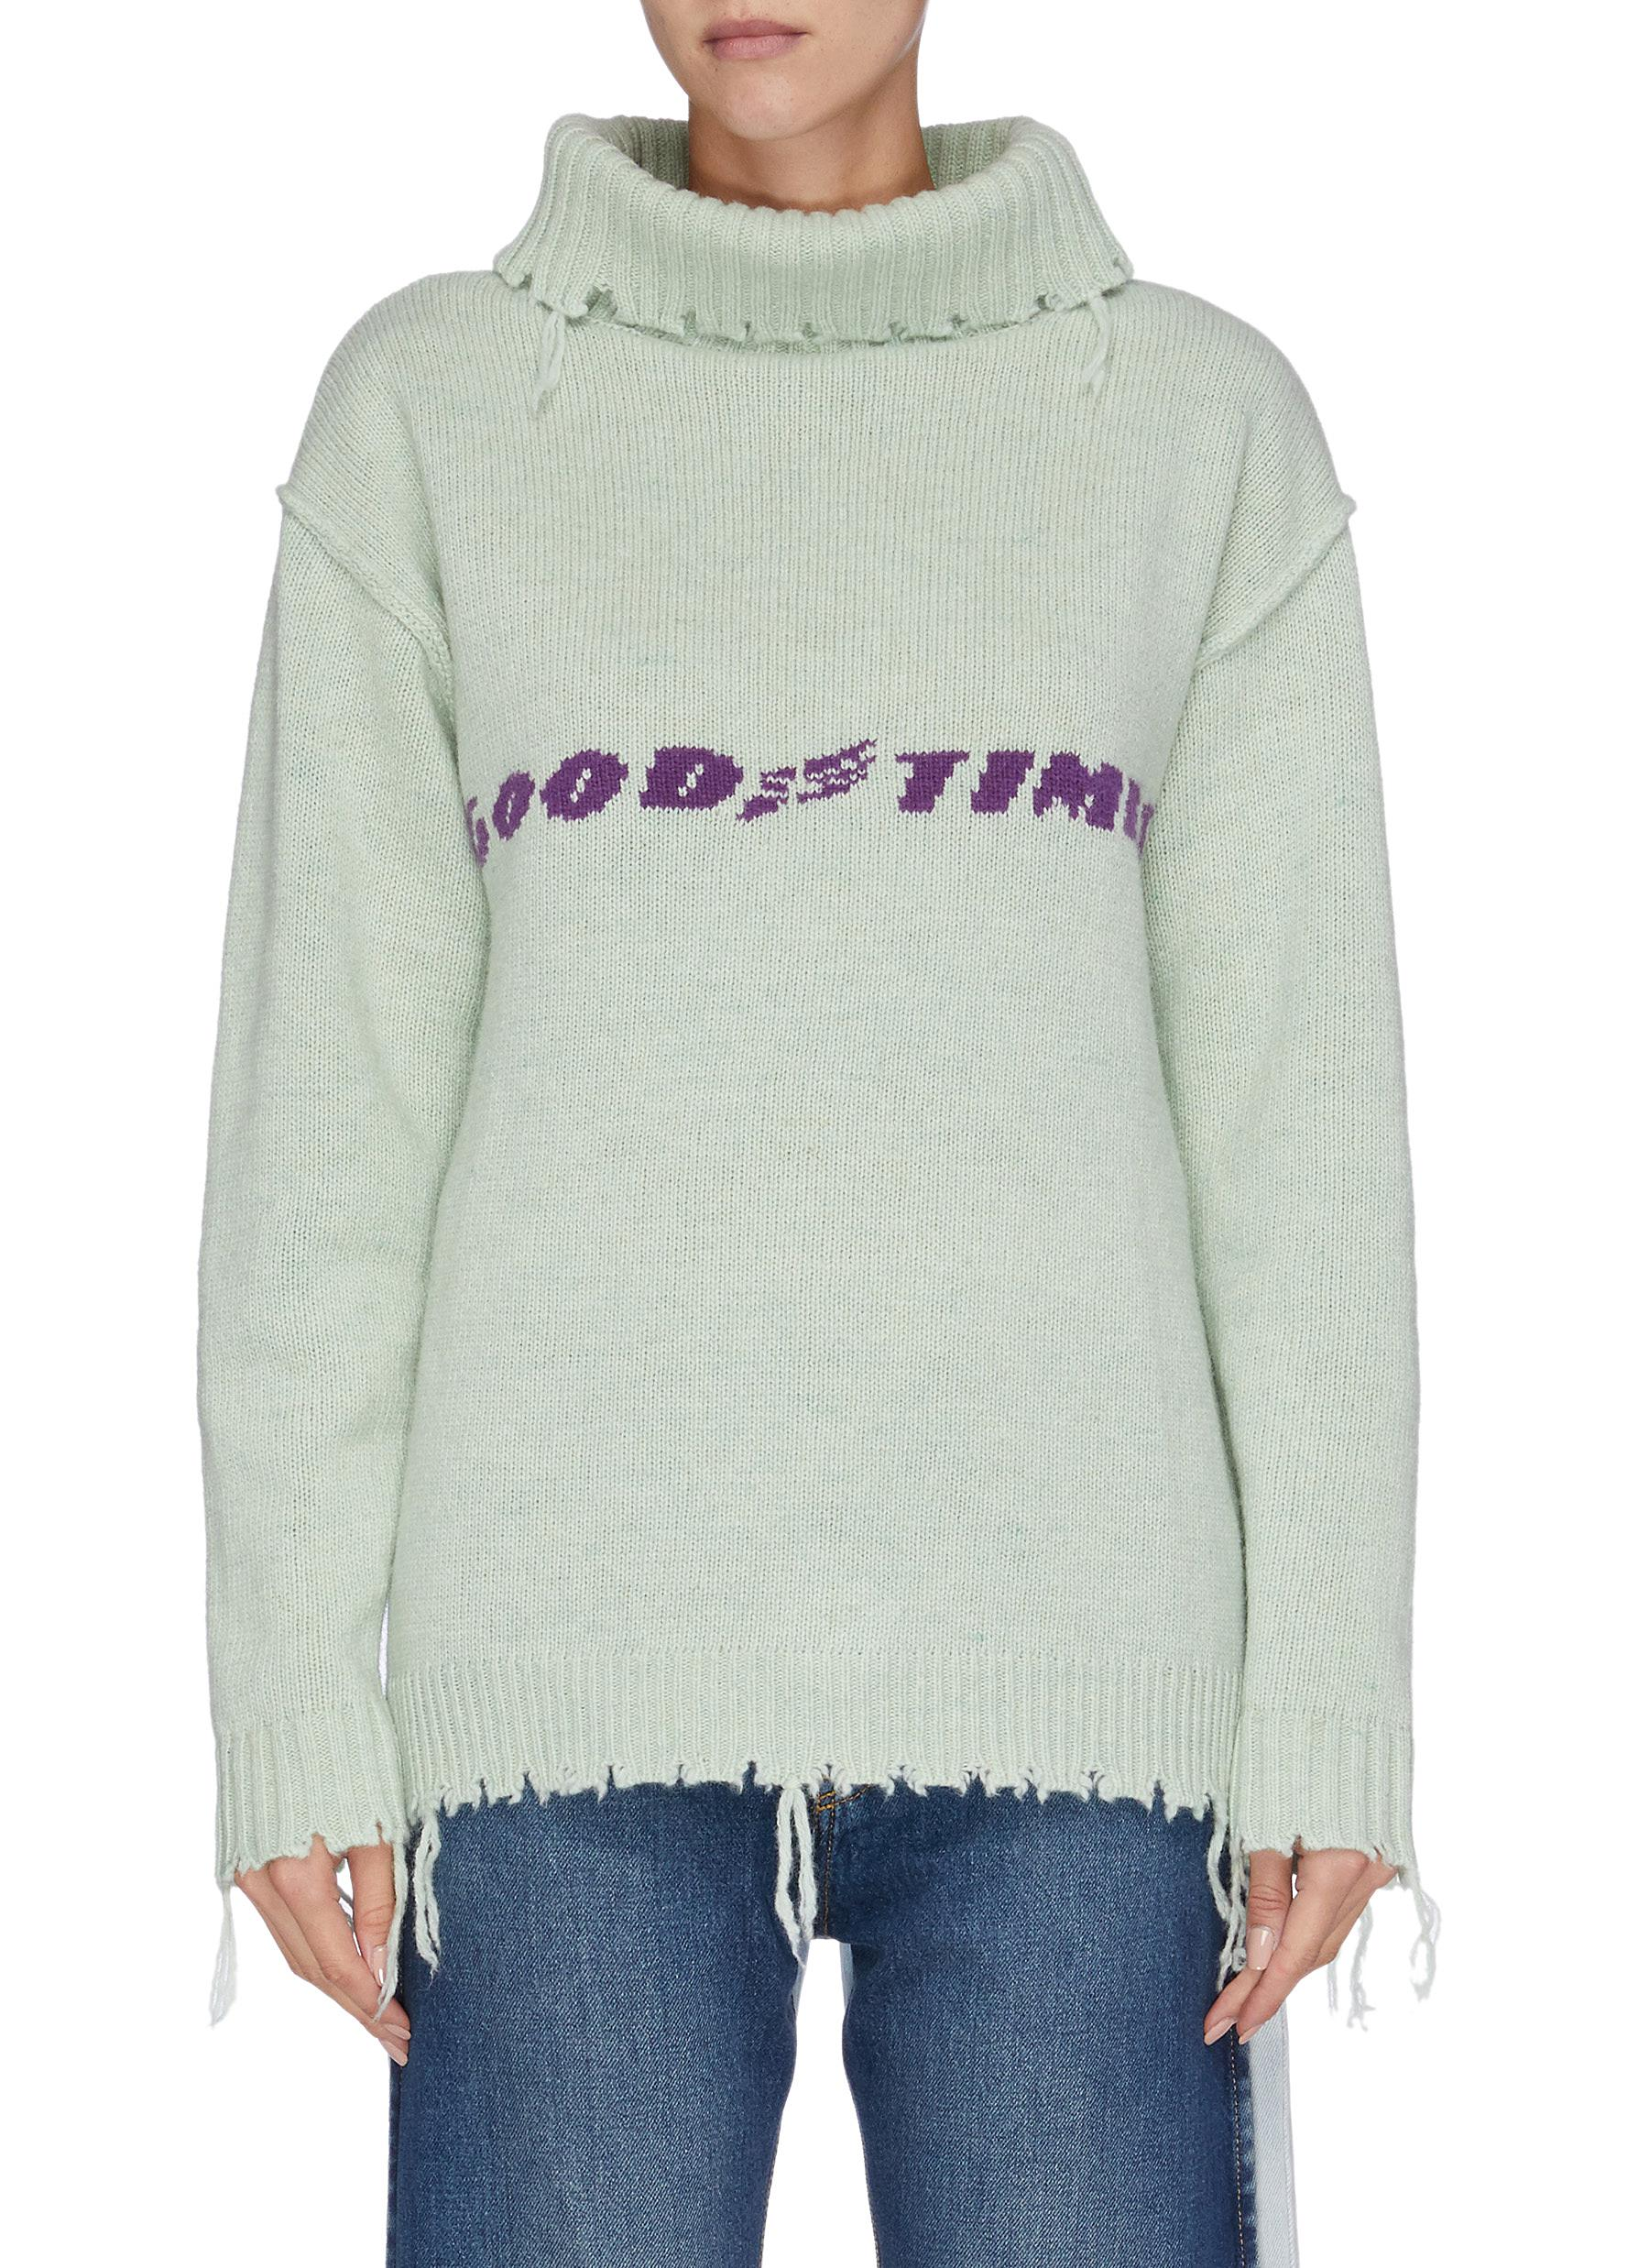 Good Times distressed widened mock neck sweater by Ground Zero